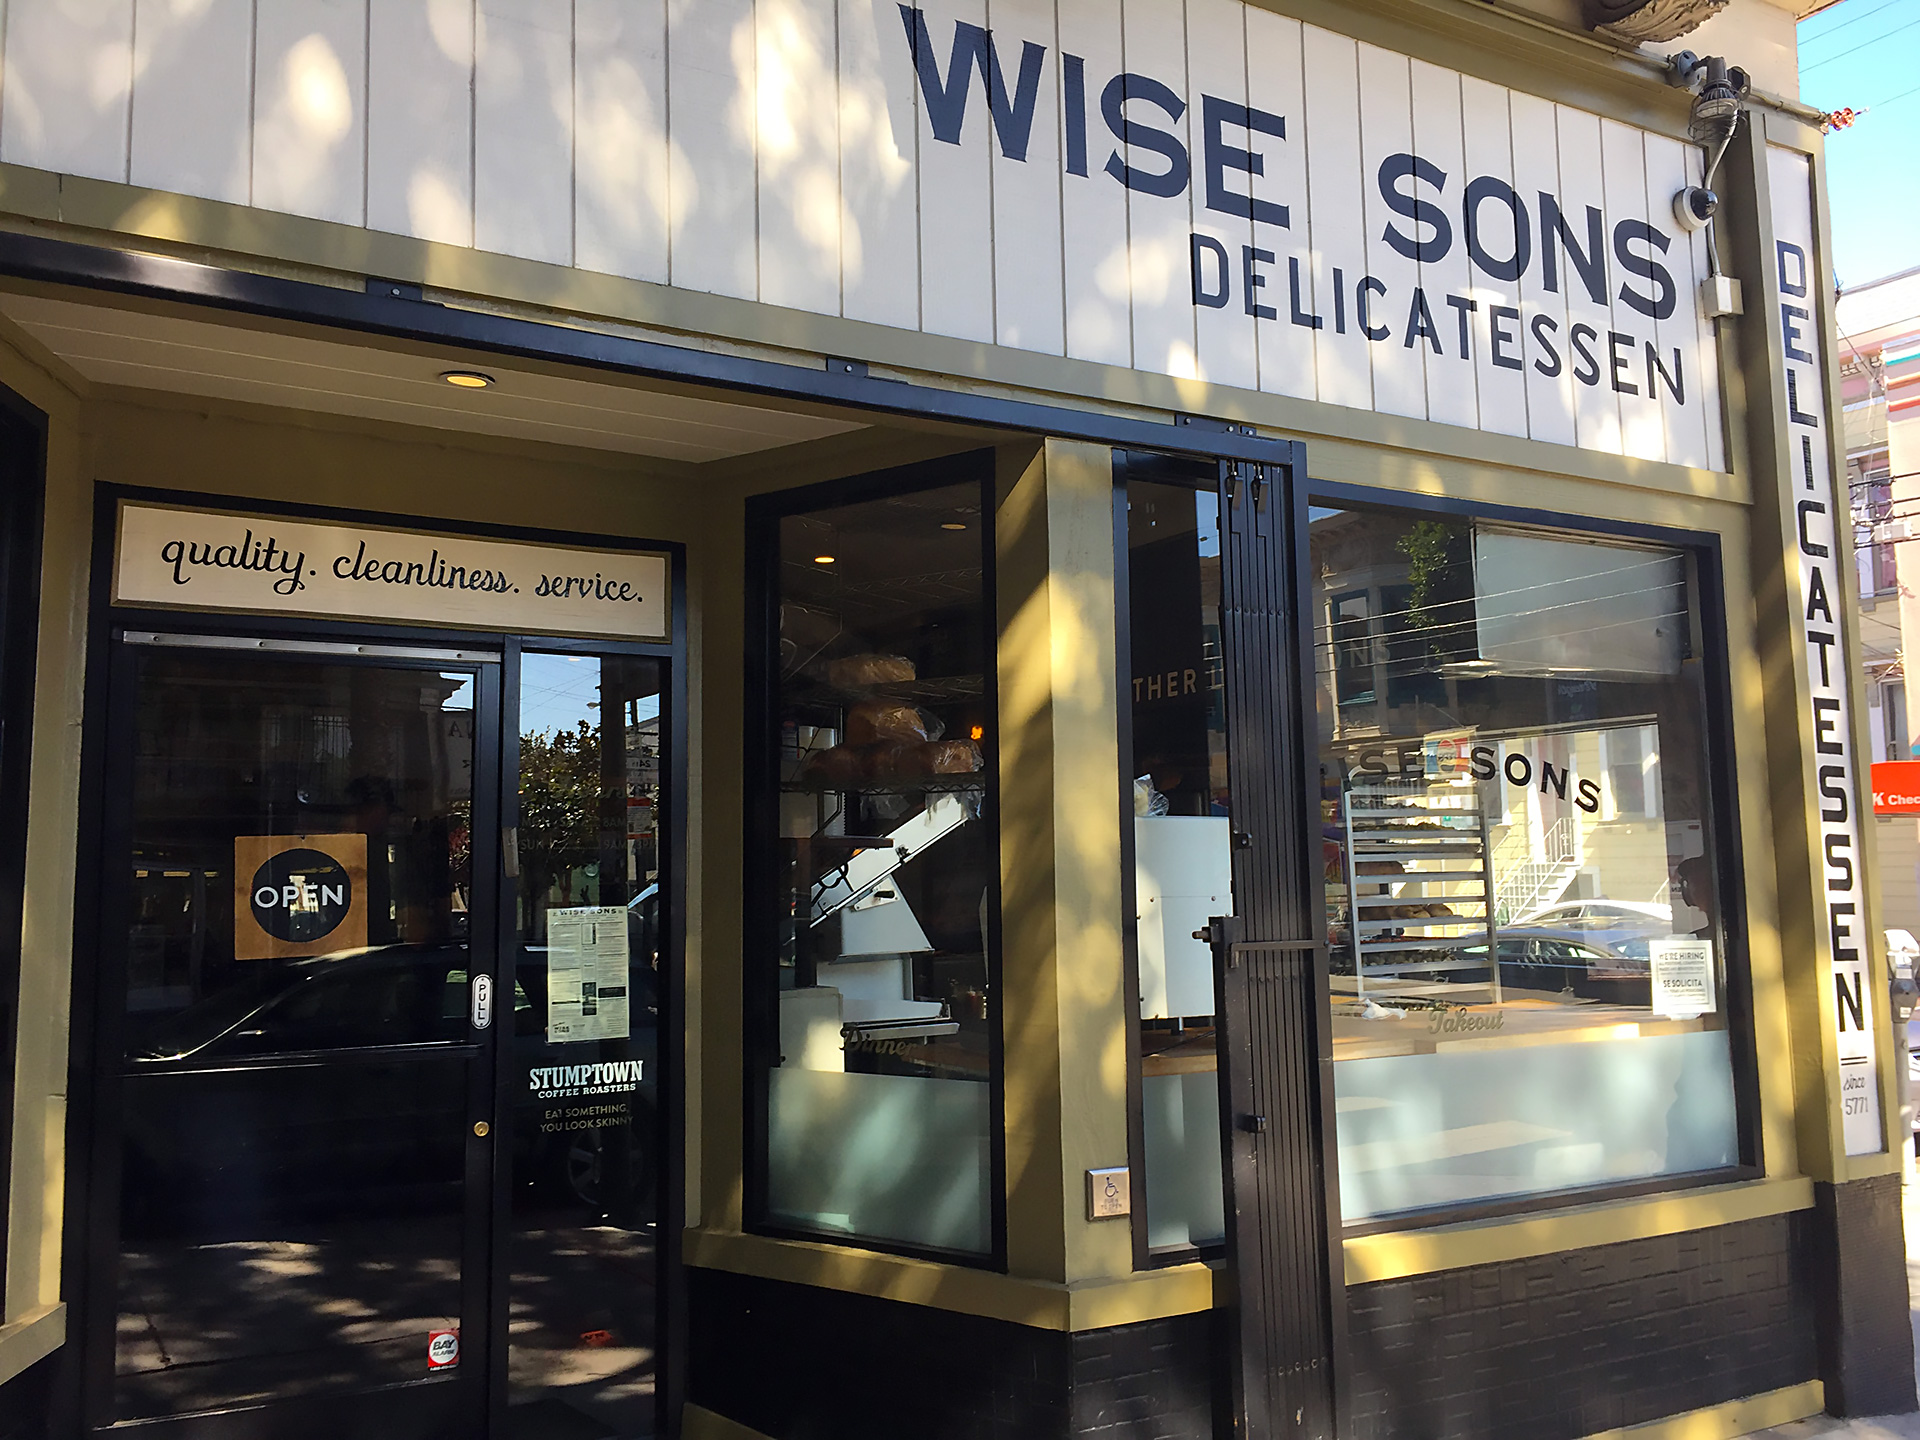 Outside WIse Sons Deli on 24th Street.